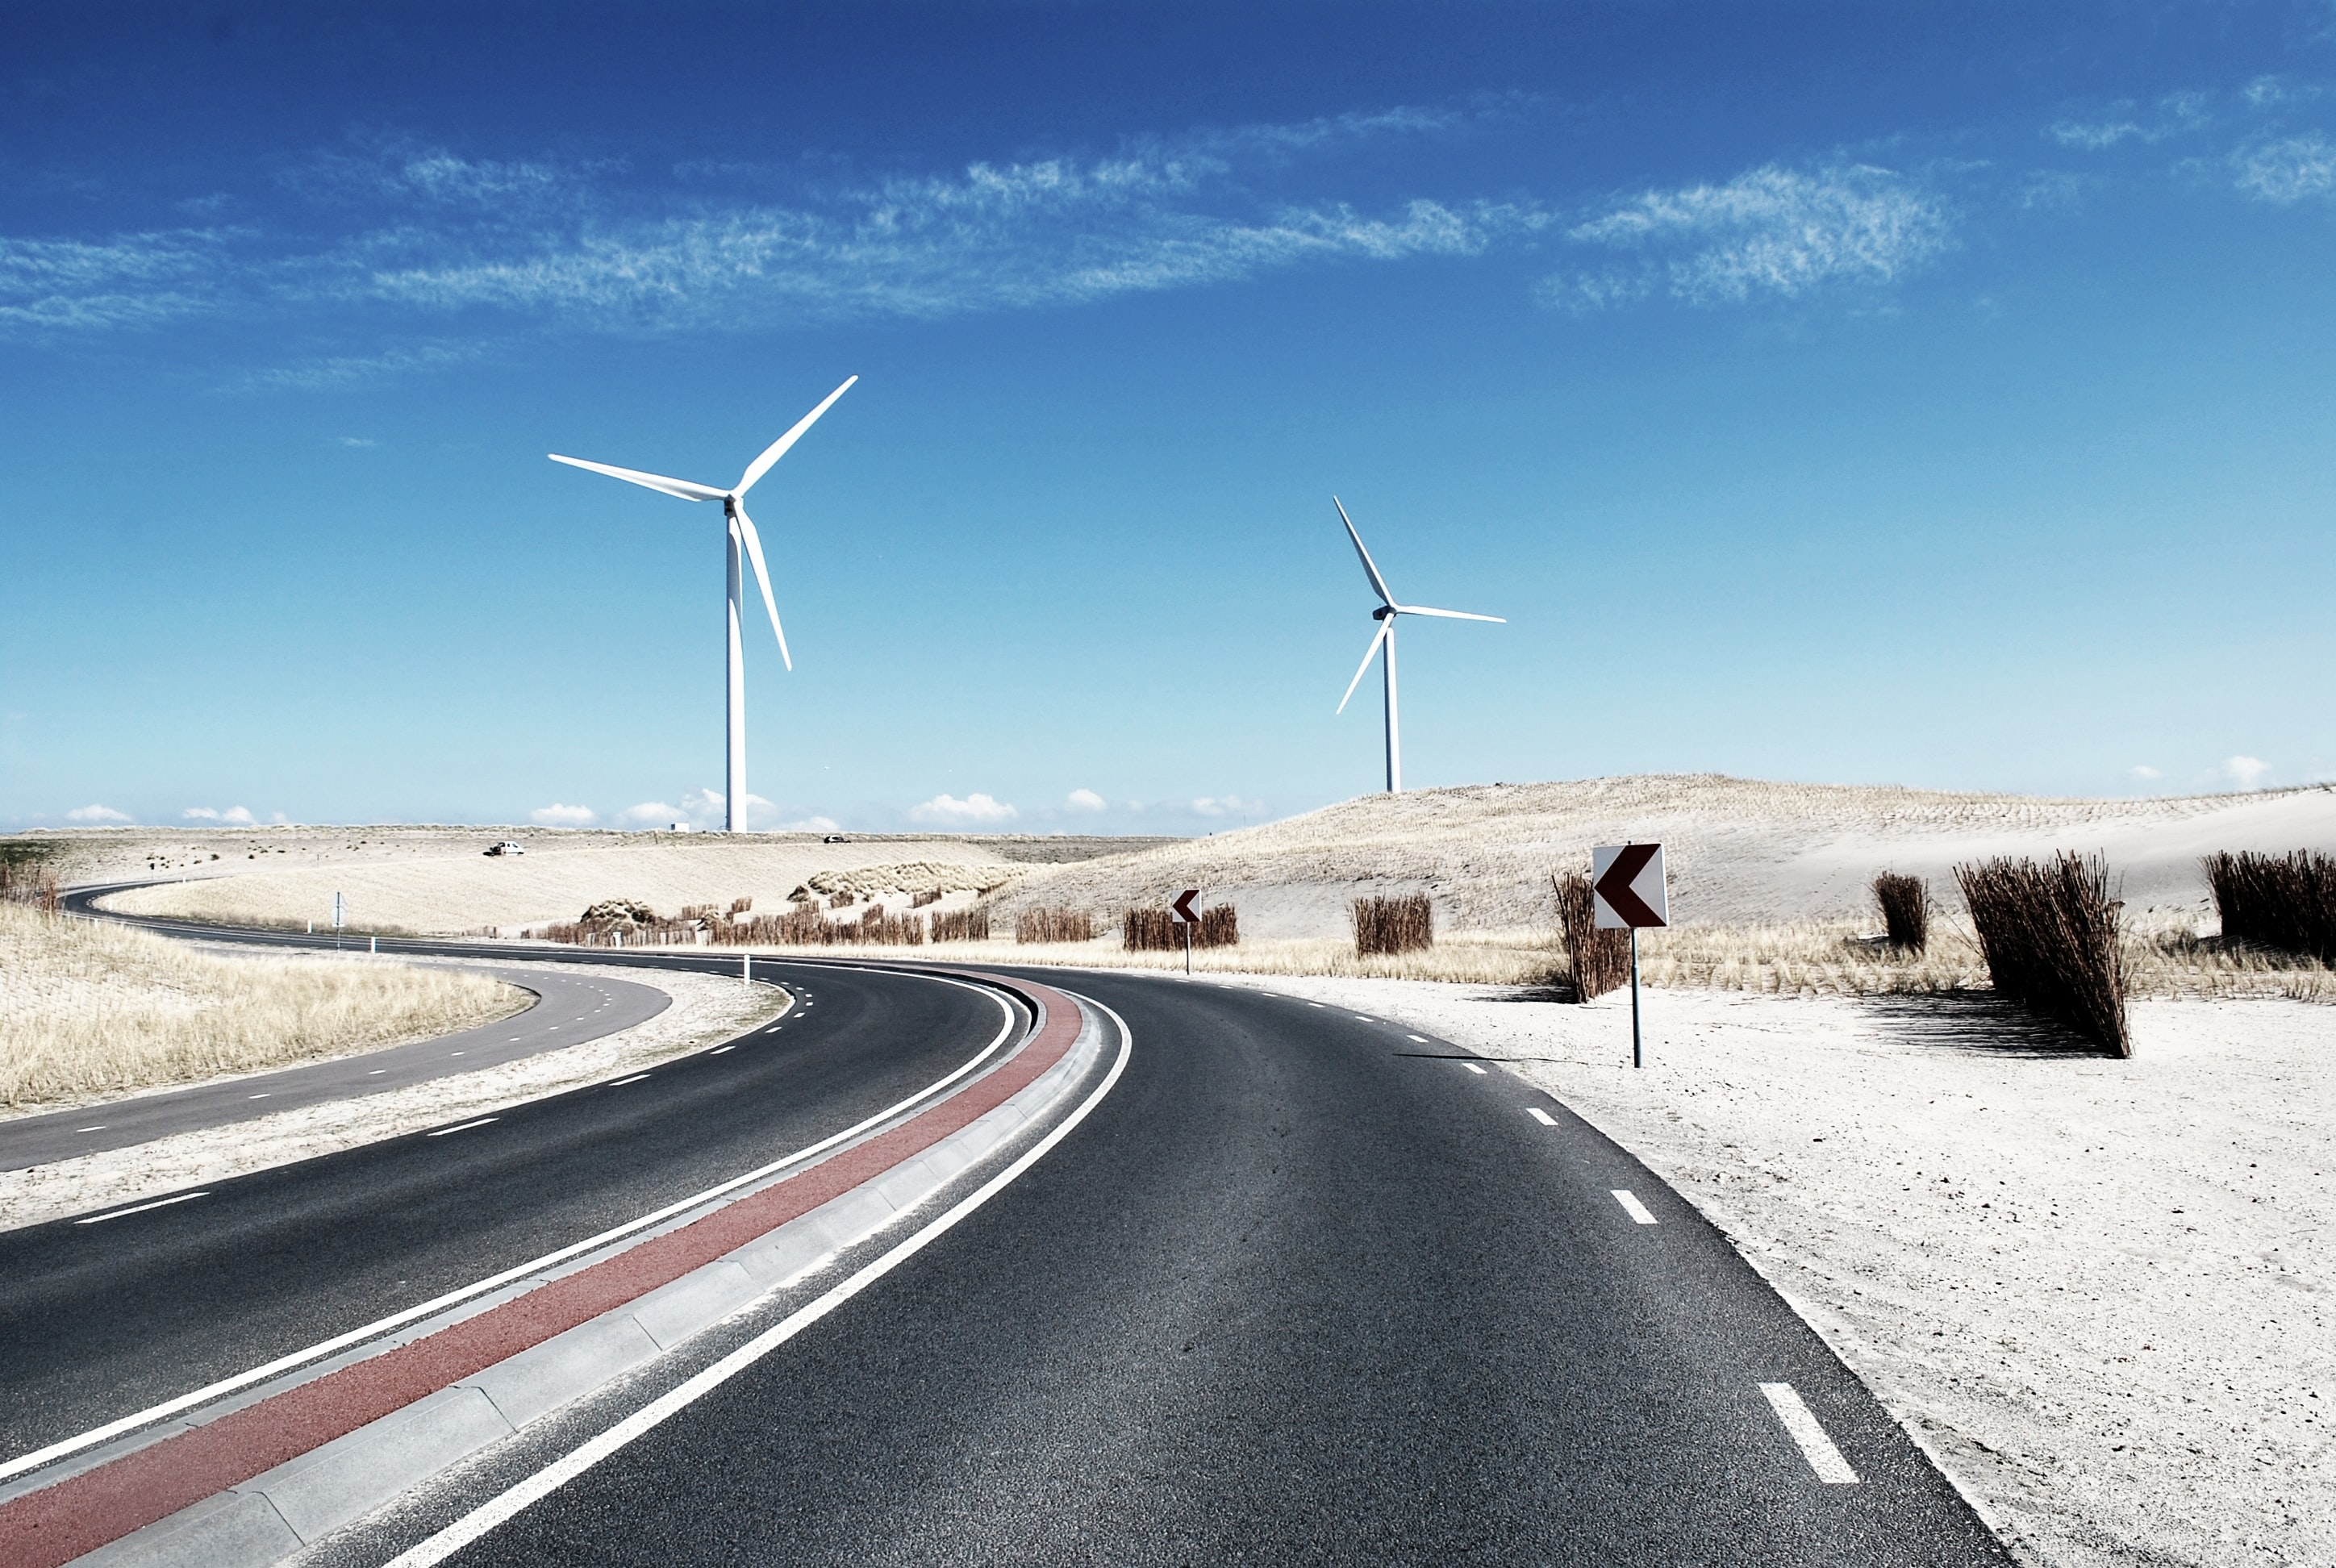 Wind Turbines situated along the paved roads across the desert.